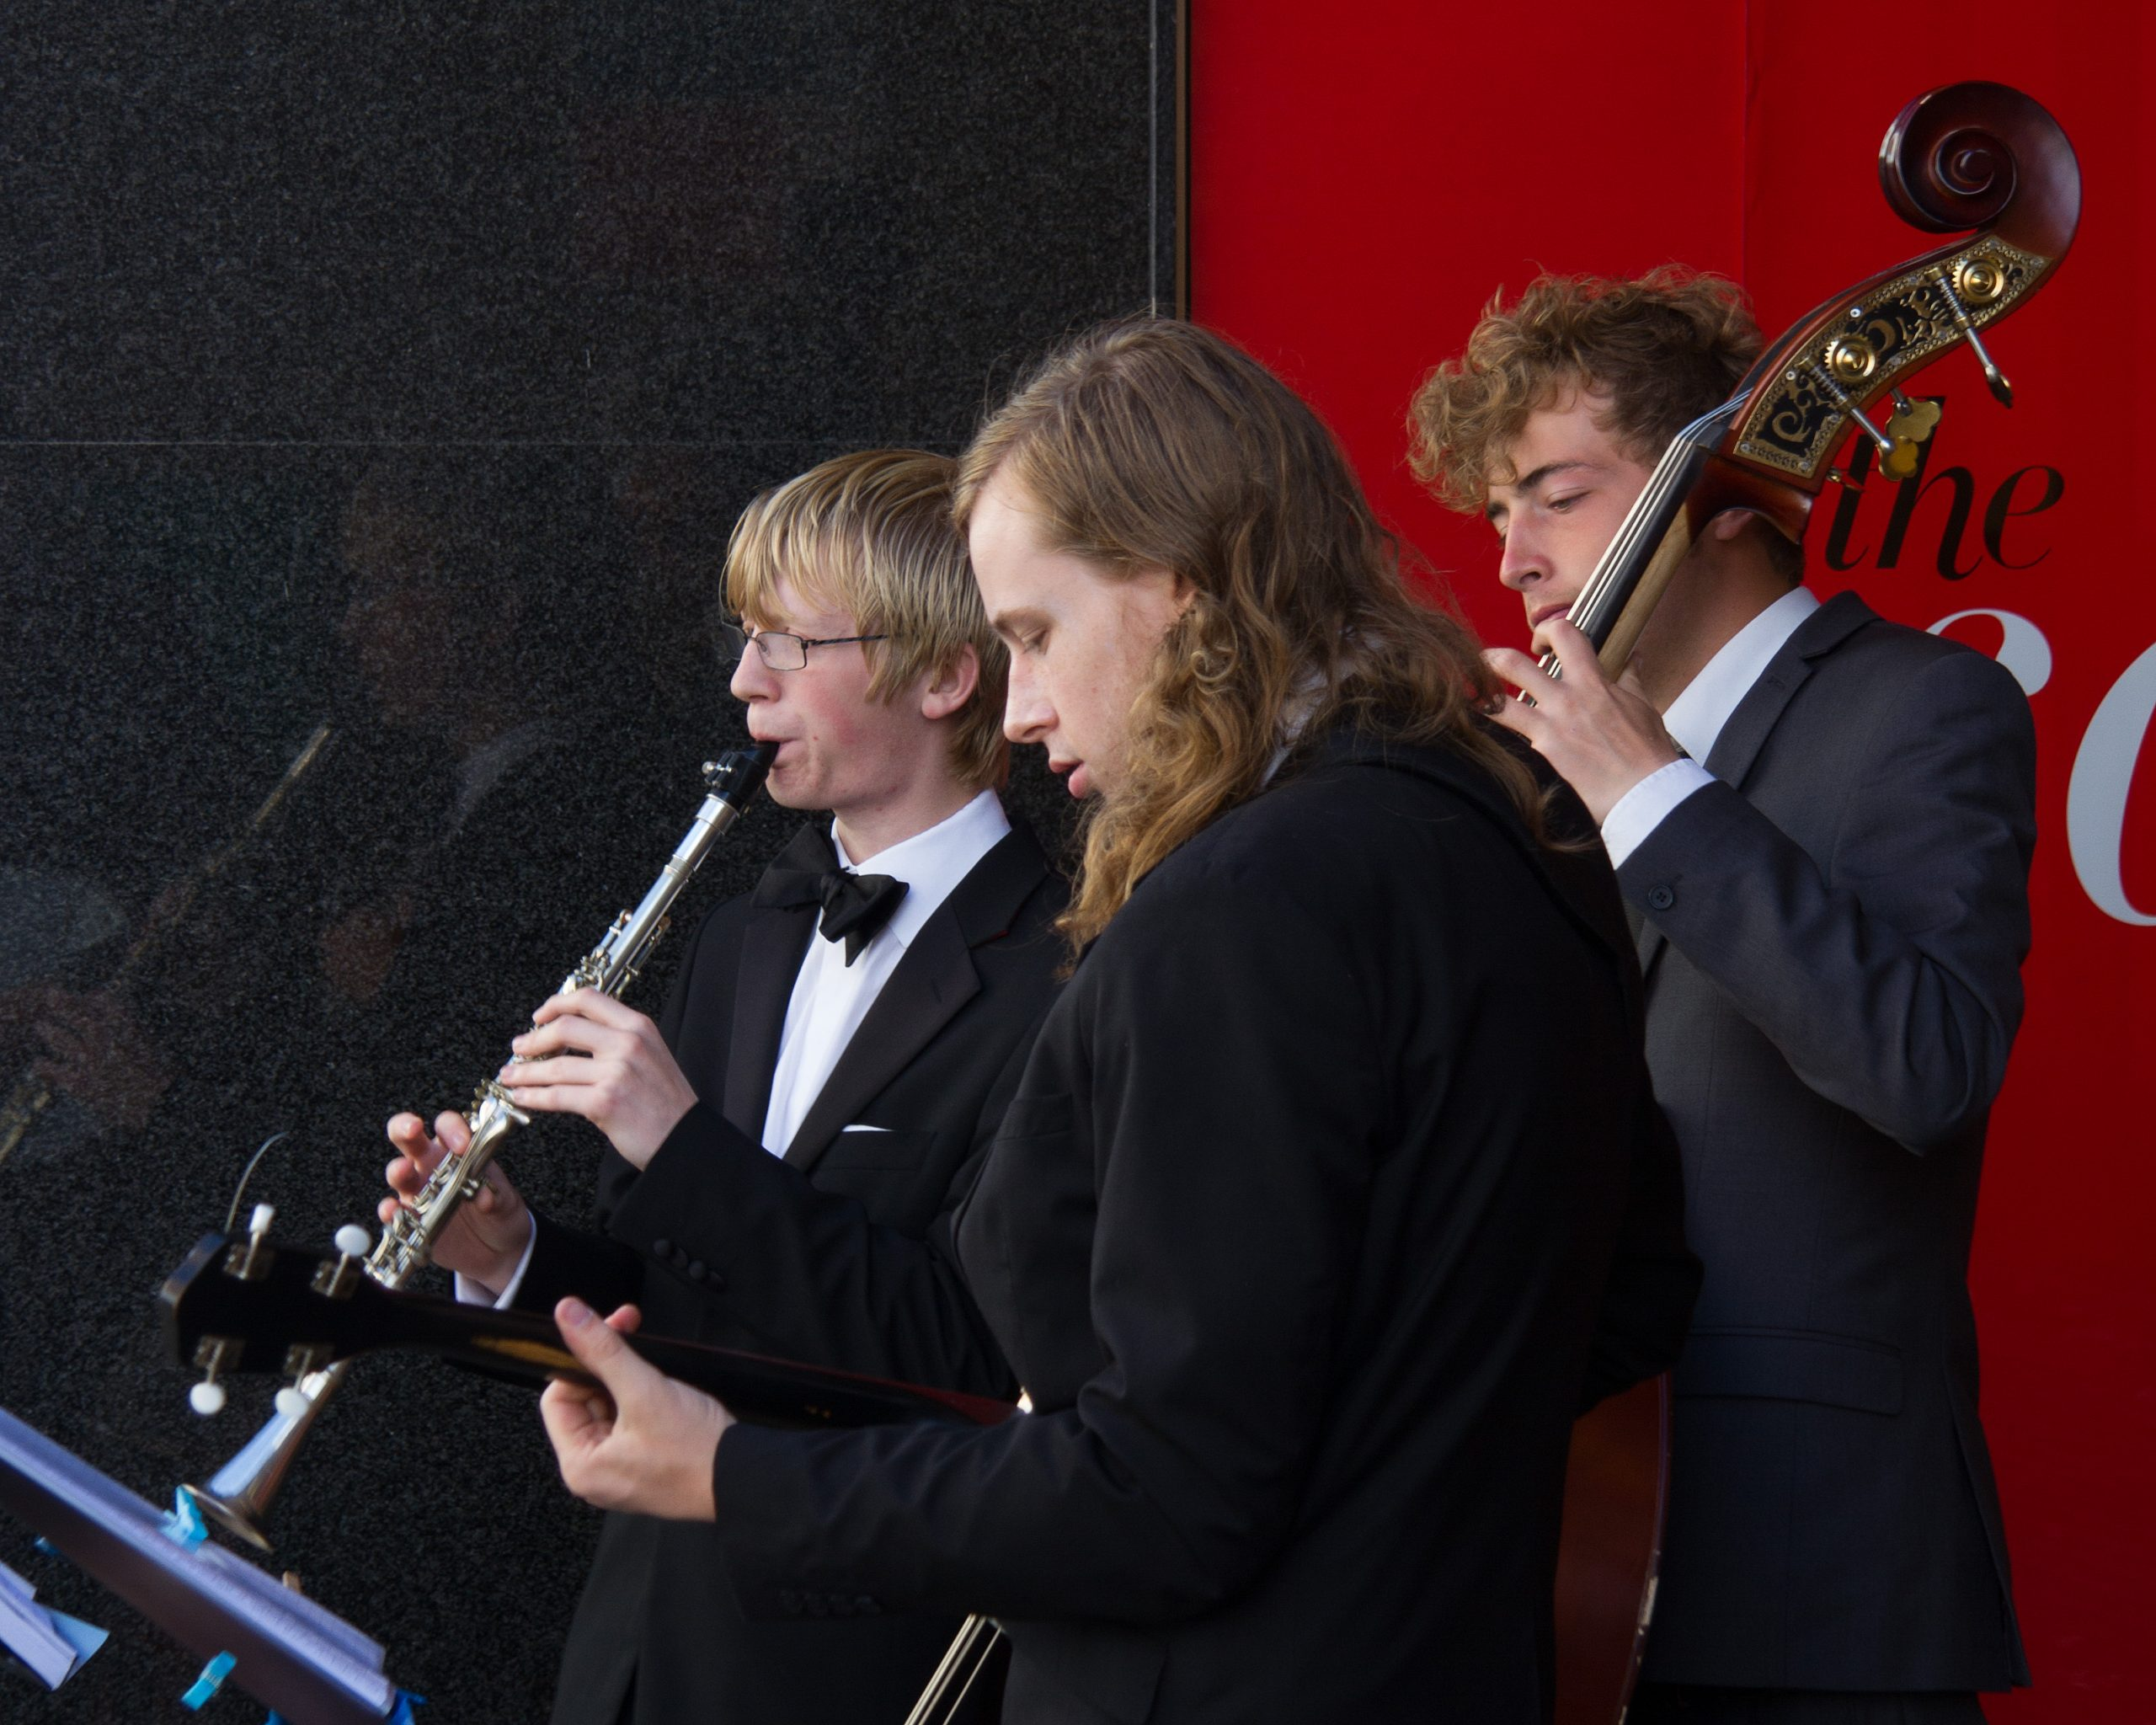 The Jelly Roll Jazz Band busking in Scarborough, August 2014 (2)